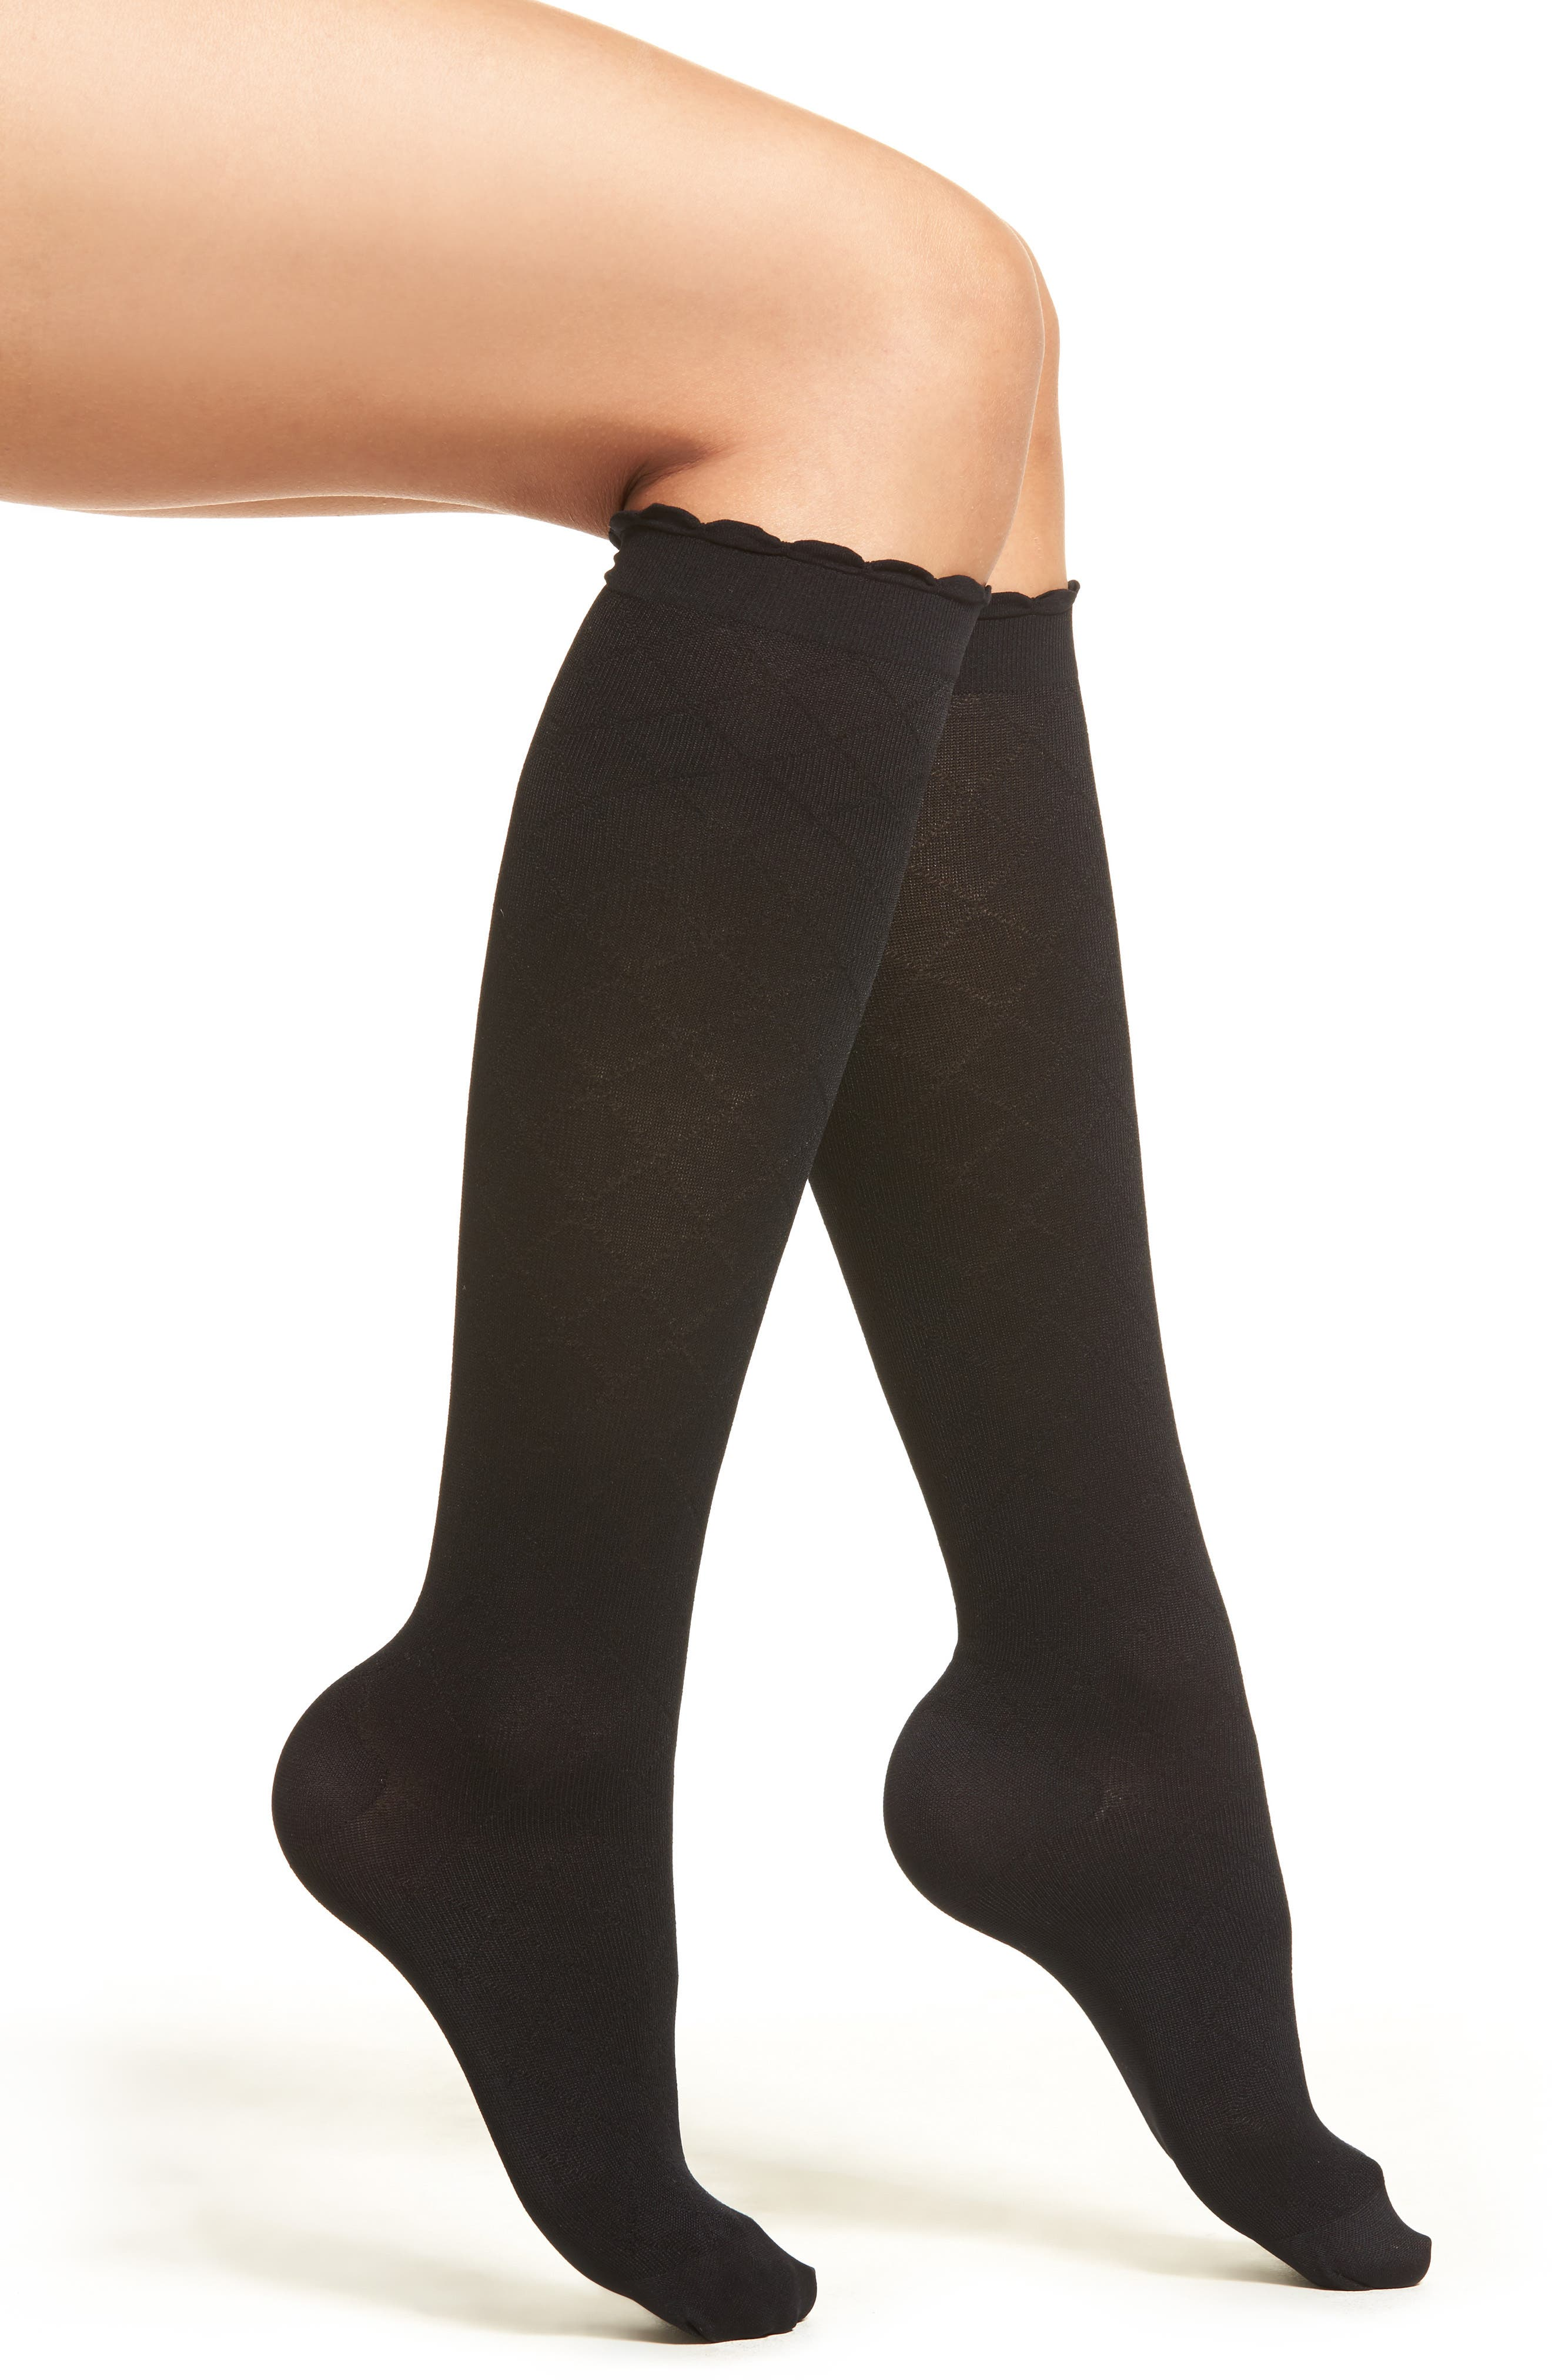 c33401f796b Women s Knee High Socks   Hosiery